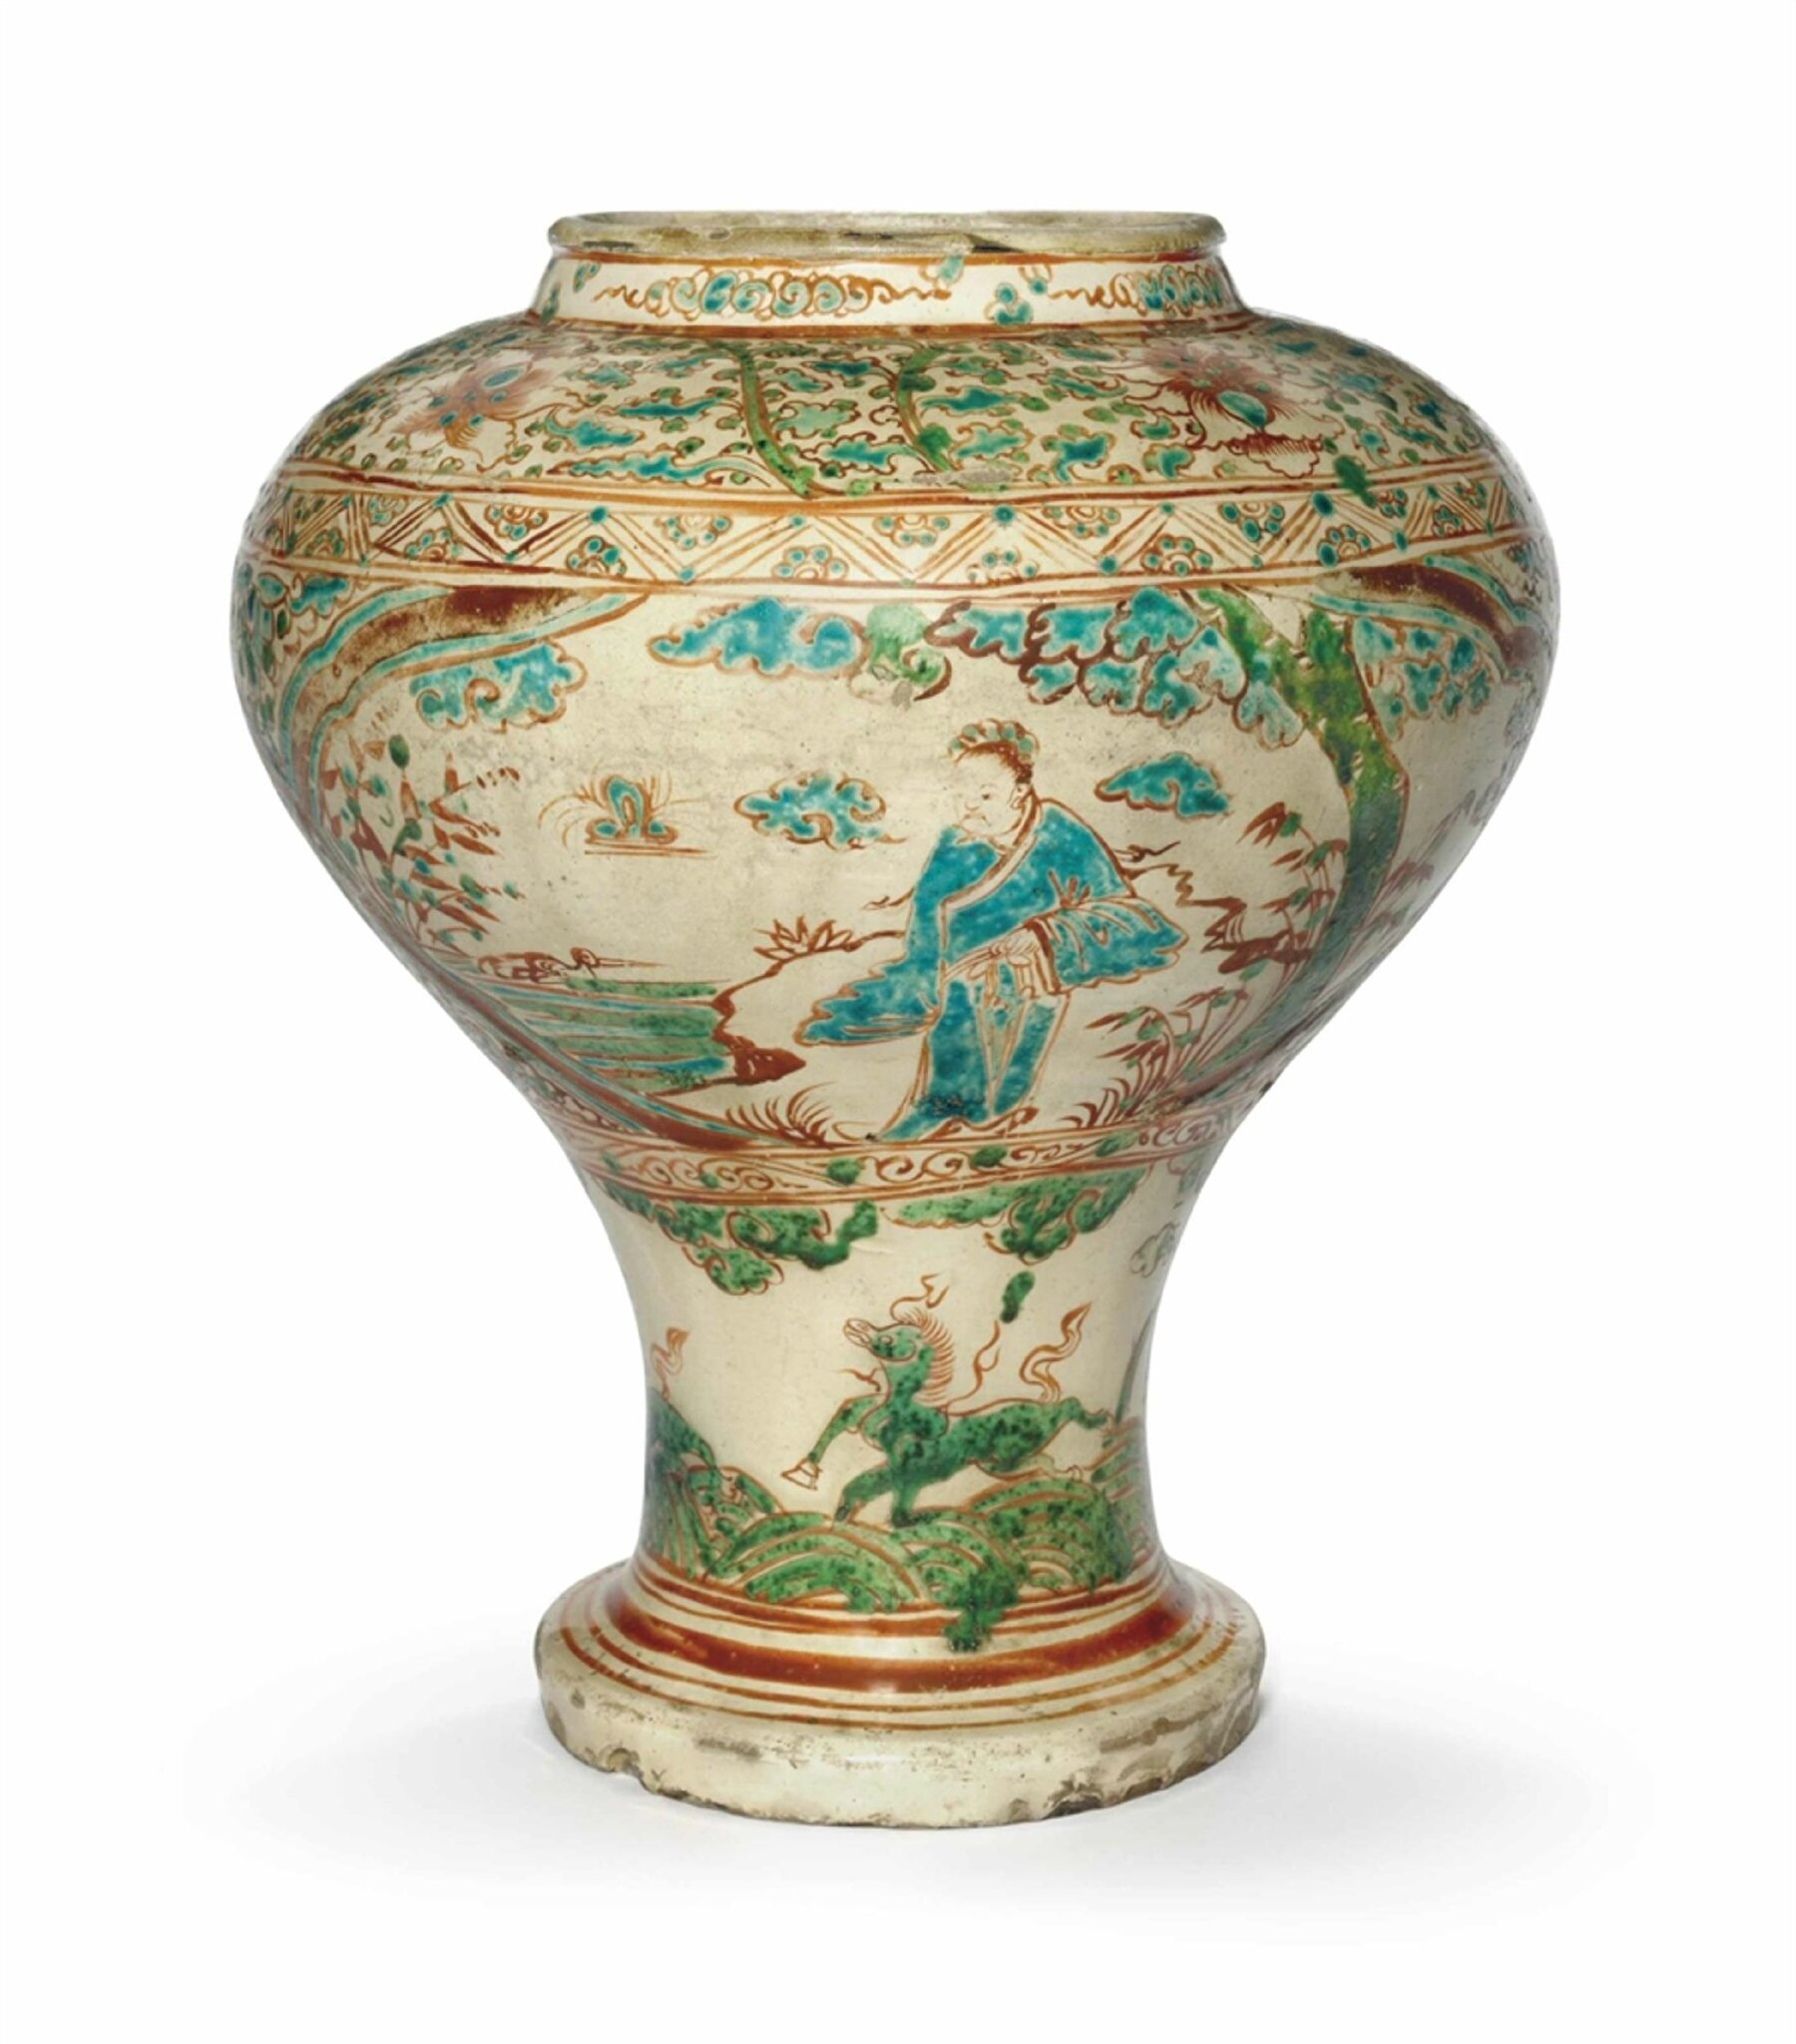 A Cizhou-type polychrome-decorated baluster vase, Ming dynasty, 15th-16th century